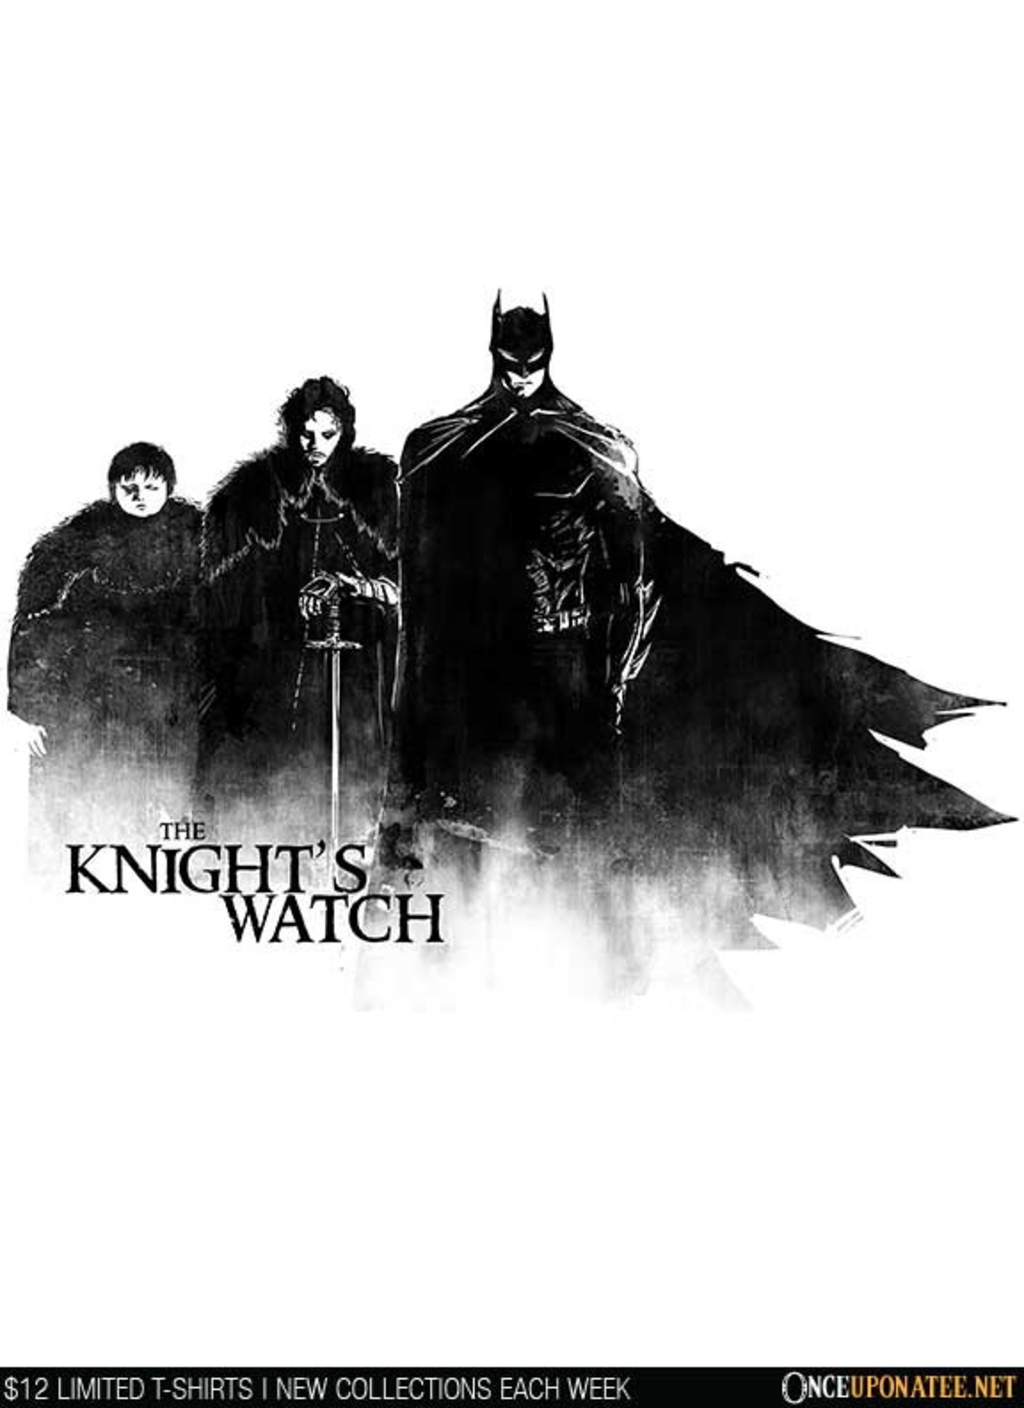 Once Upon a Tee: The Knight's Watch